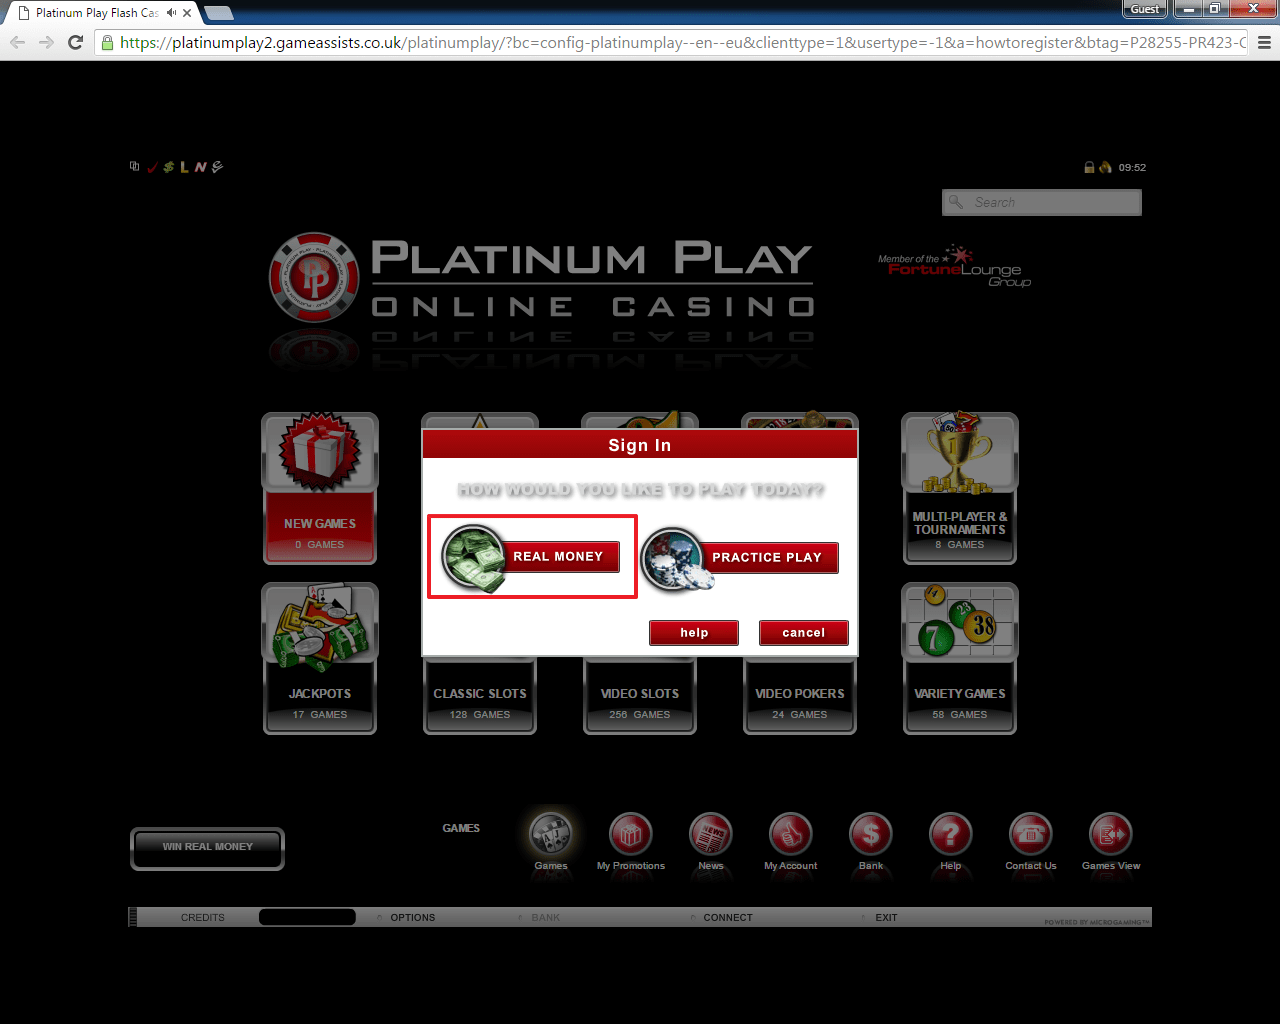 platinum play casino sign in